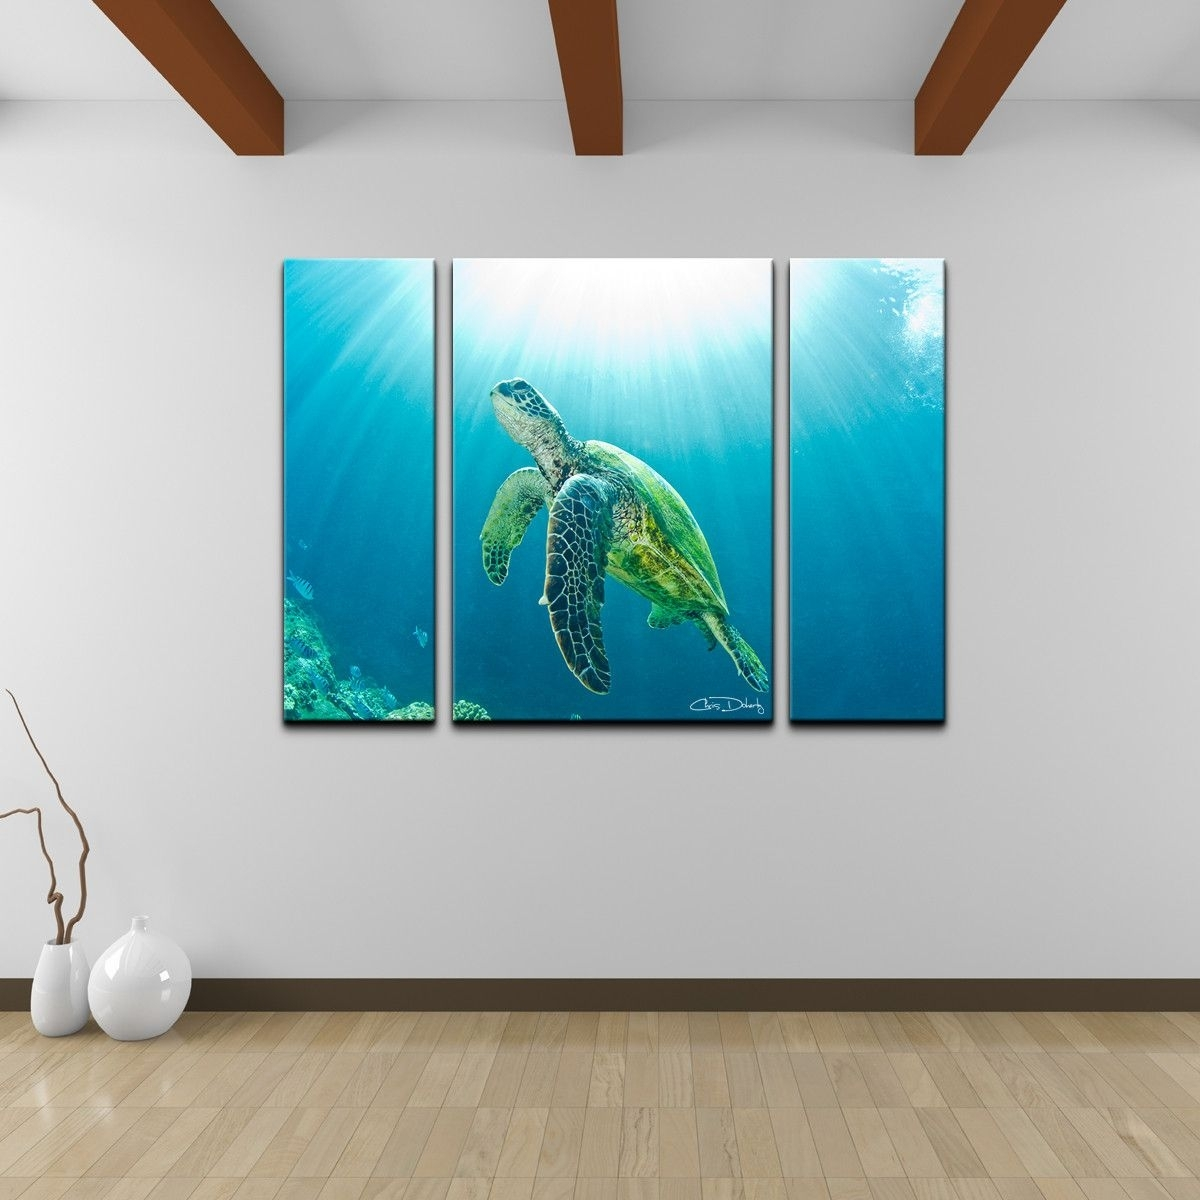 Christopher Doherty 'sea Turtle' Canvas Wall Art (3 Piece) | Turtle Within Sea Turtle Canvas Wall Art (View 8 of 20)